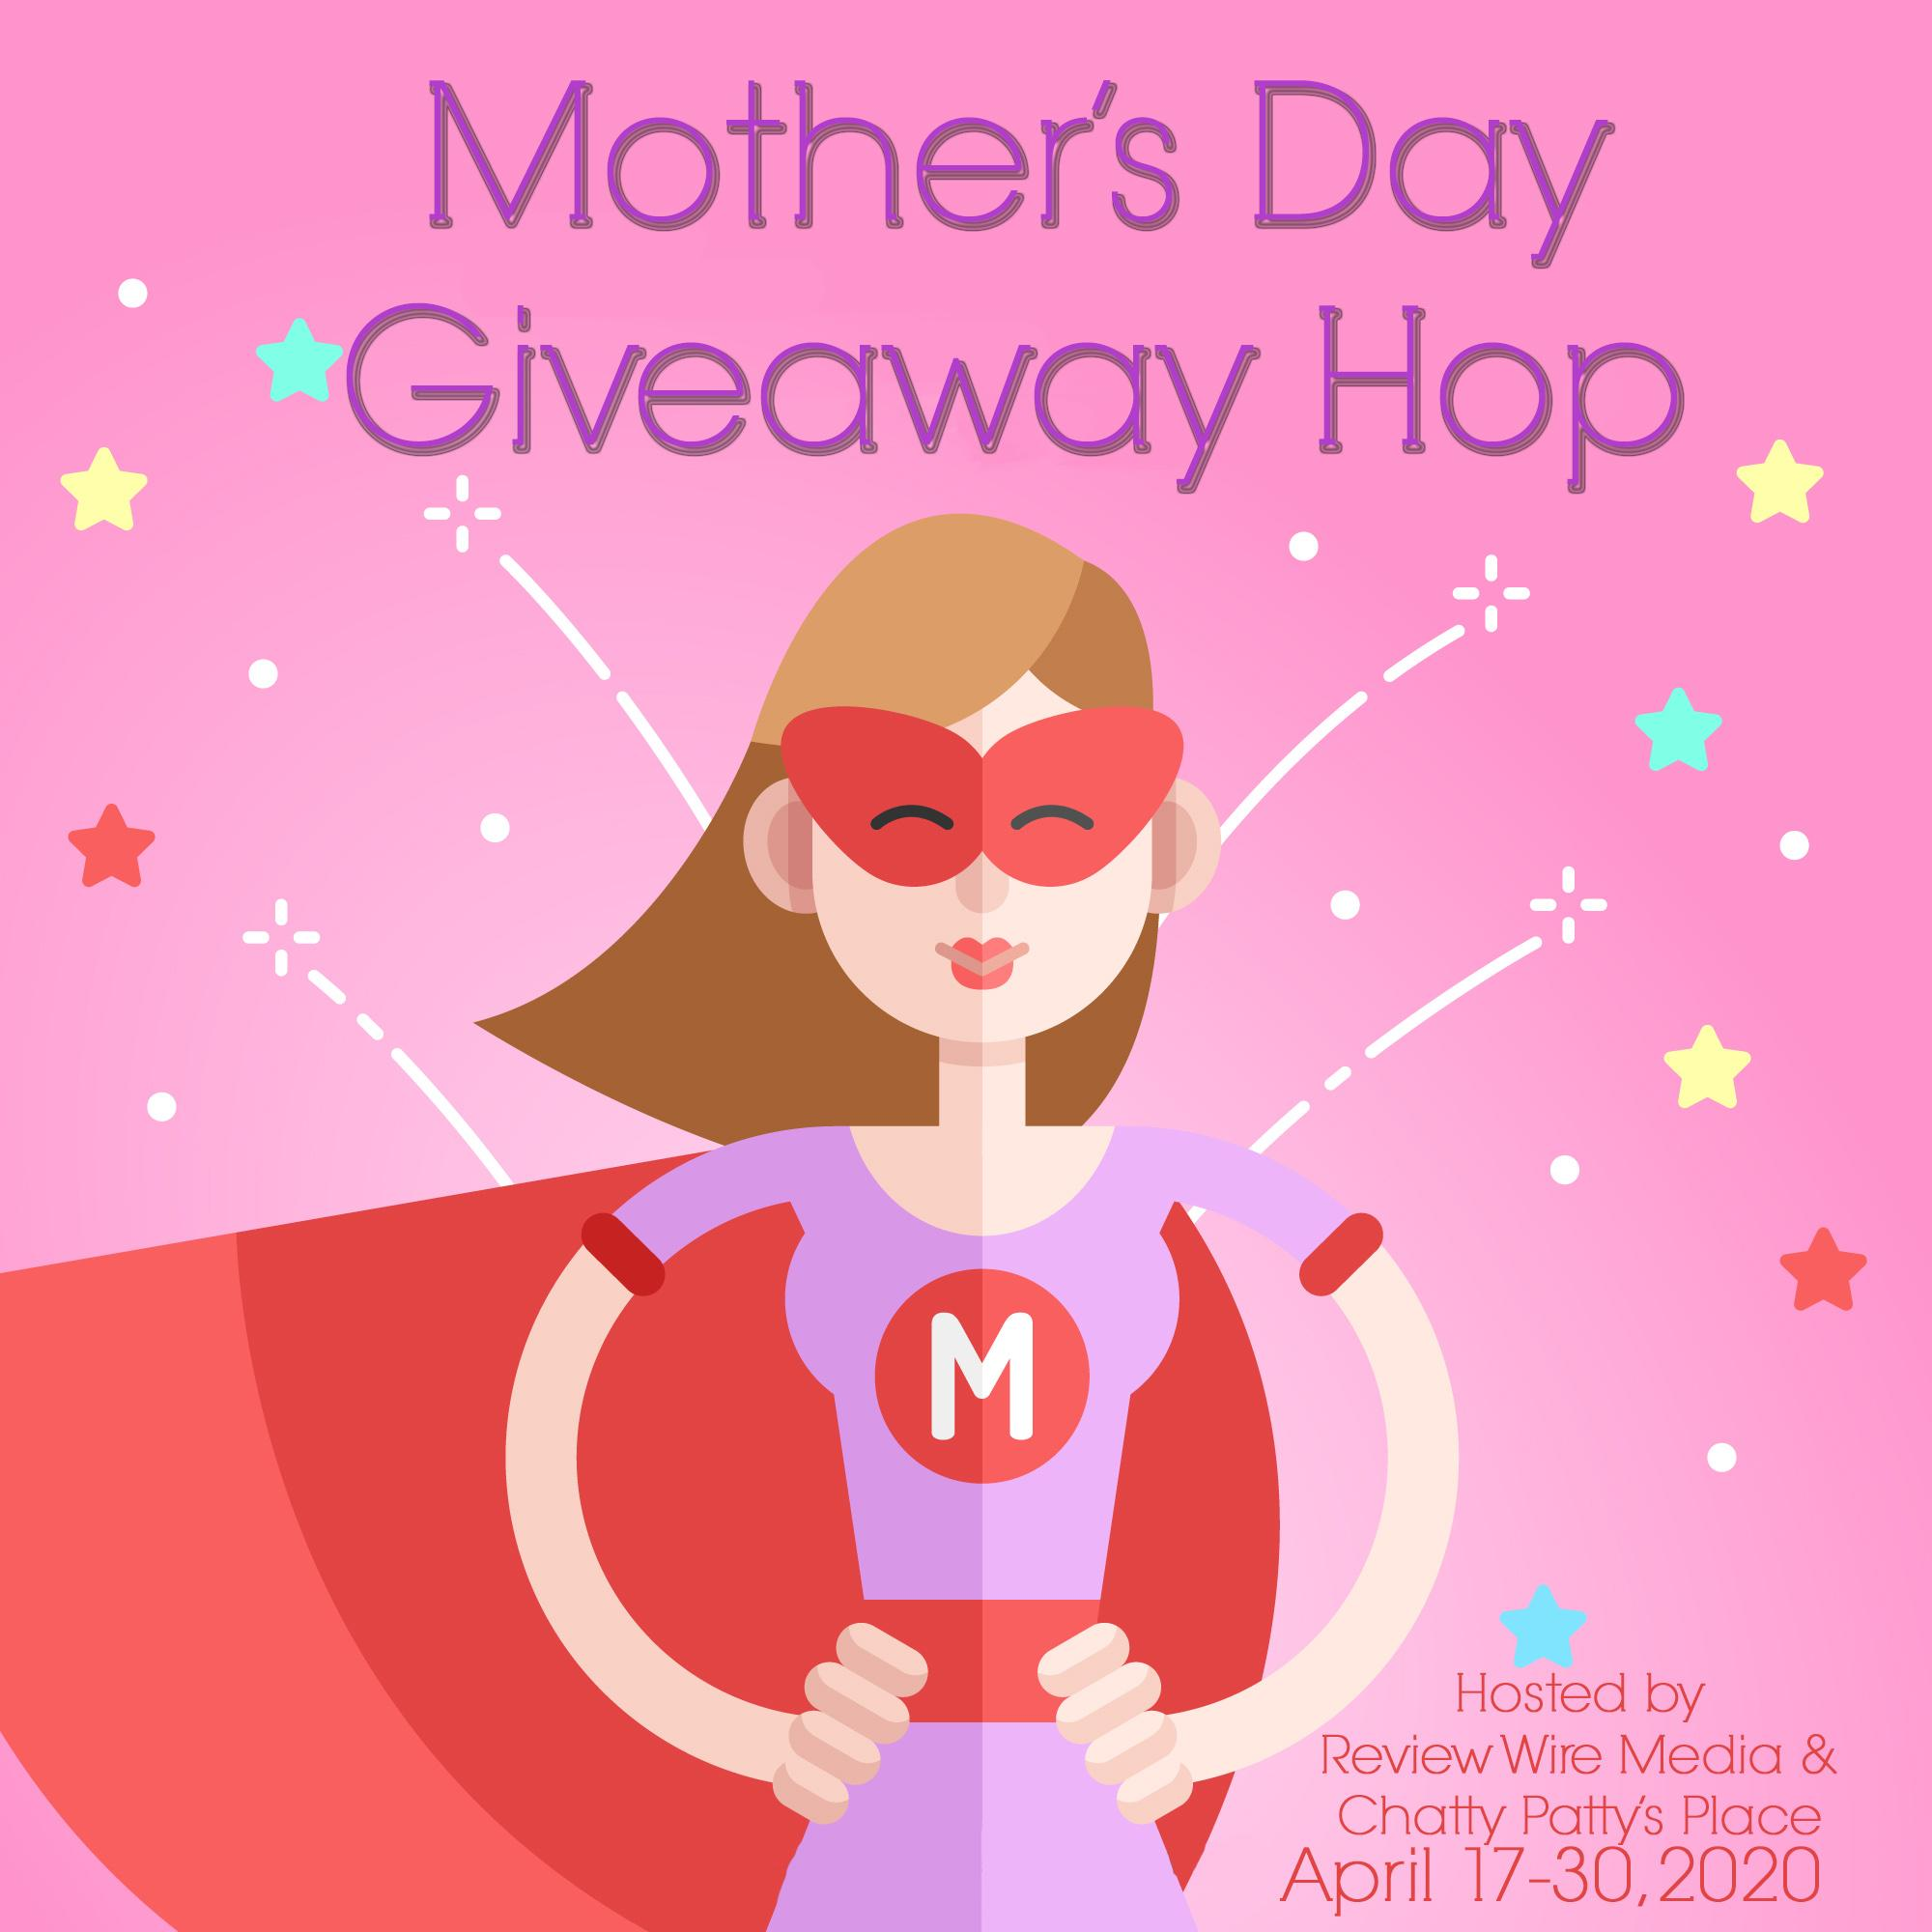 Mother's Day Giveaway Hop 2020